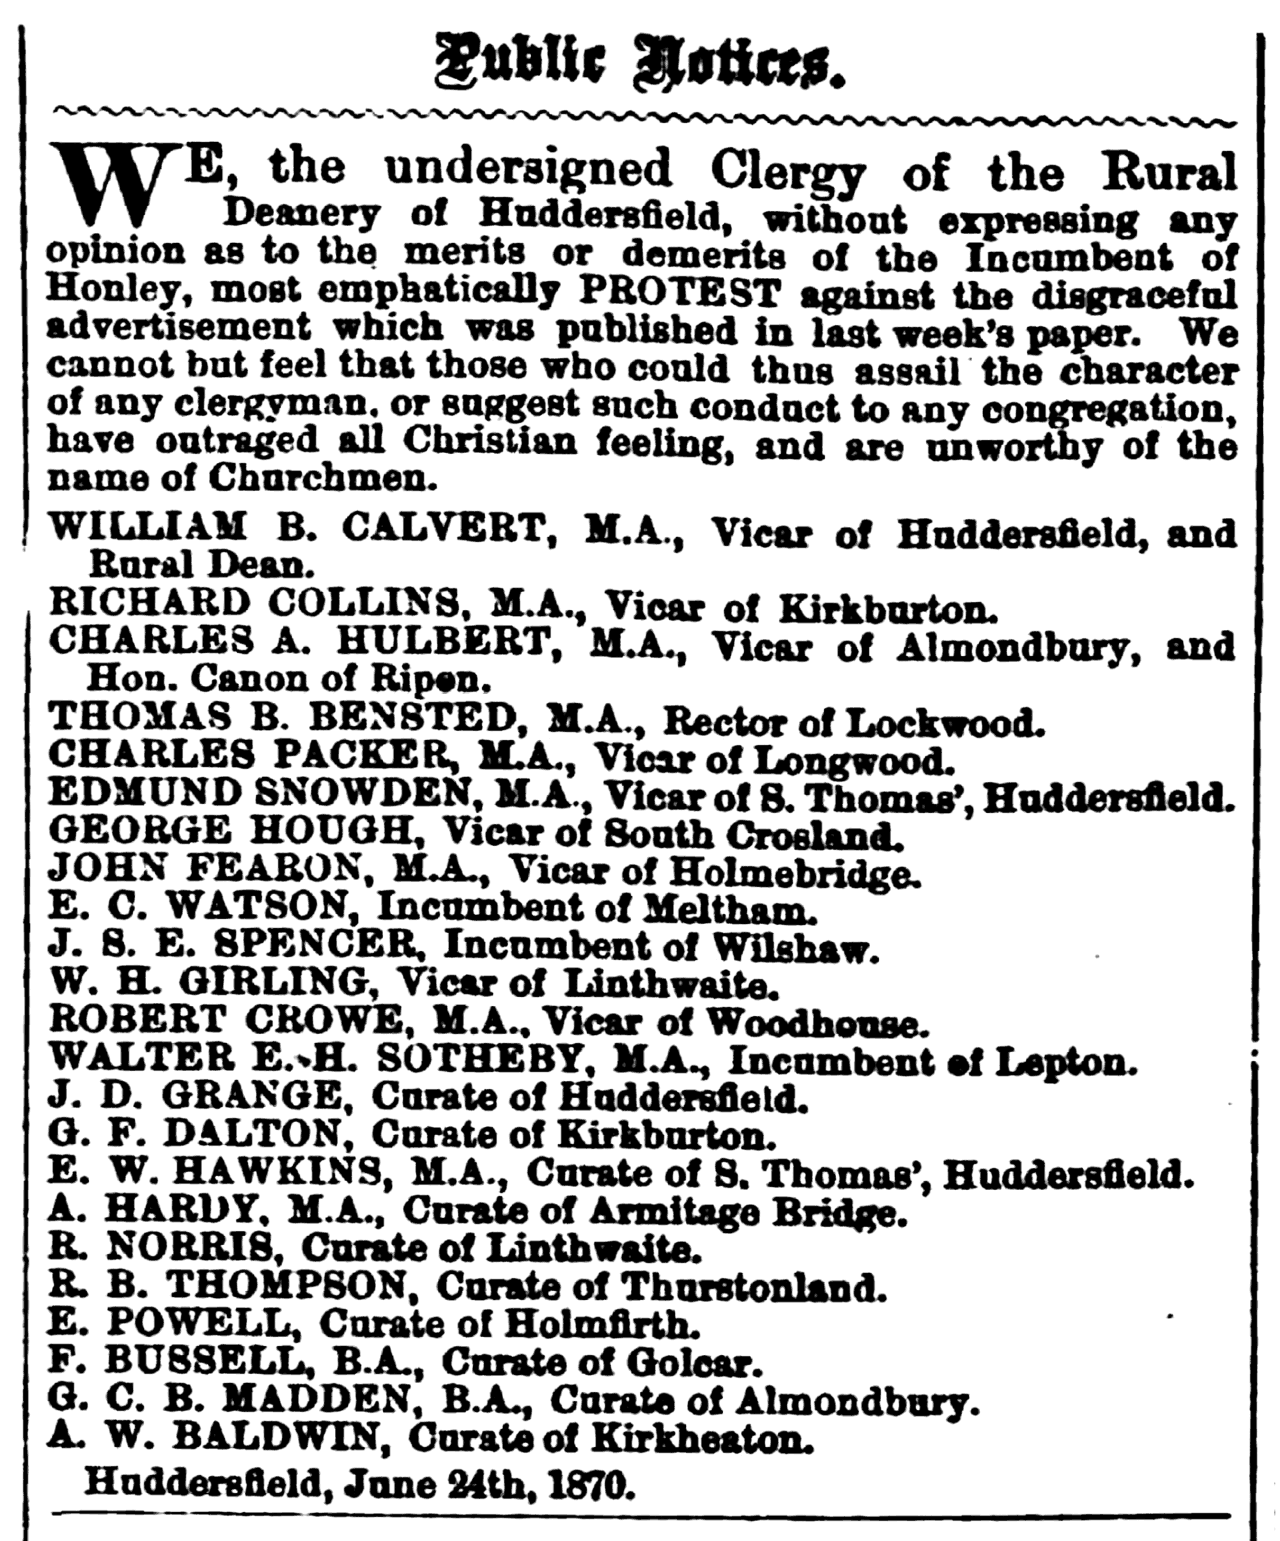 Huddersfield Chronicle 25 Jun 1870 - Public Notices.png